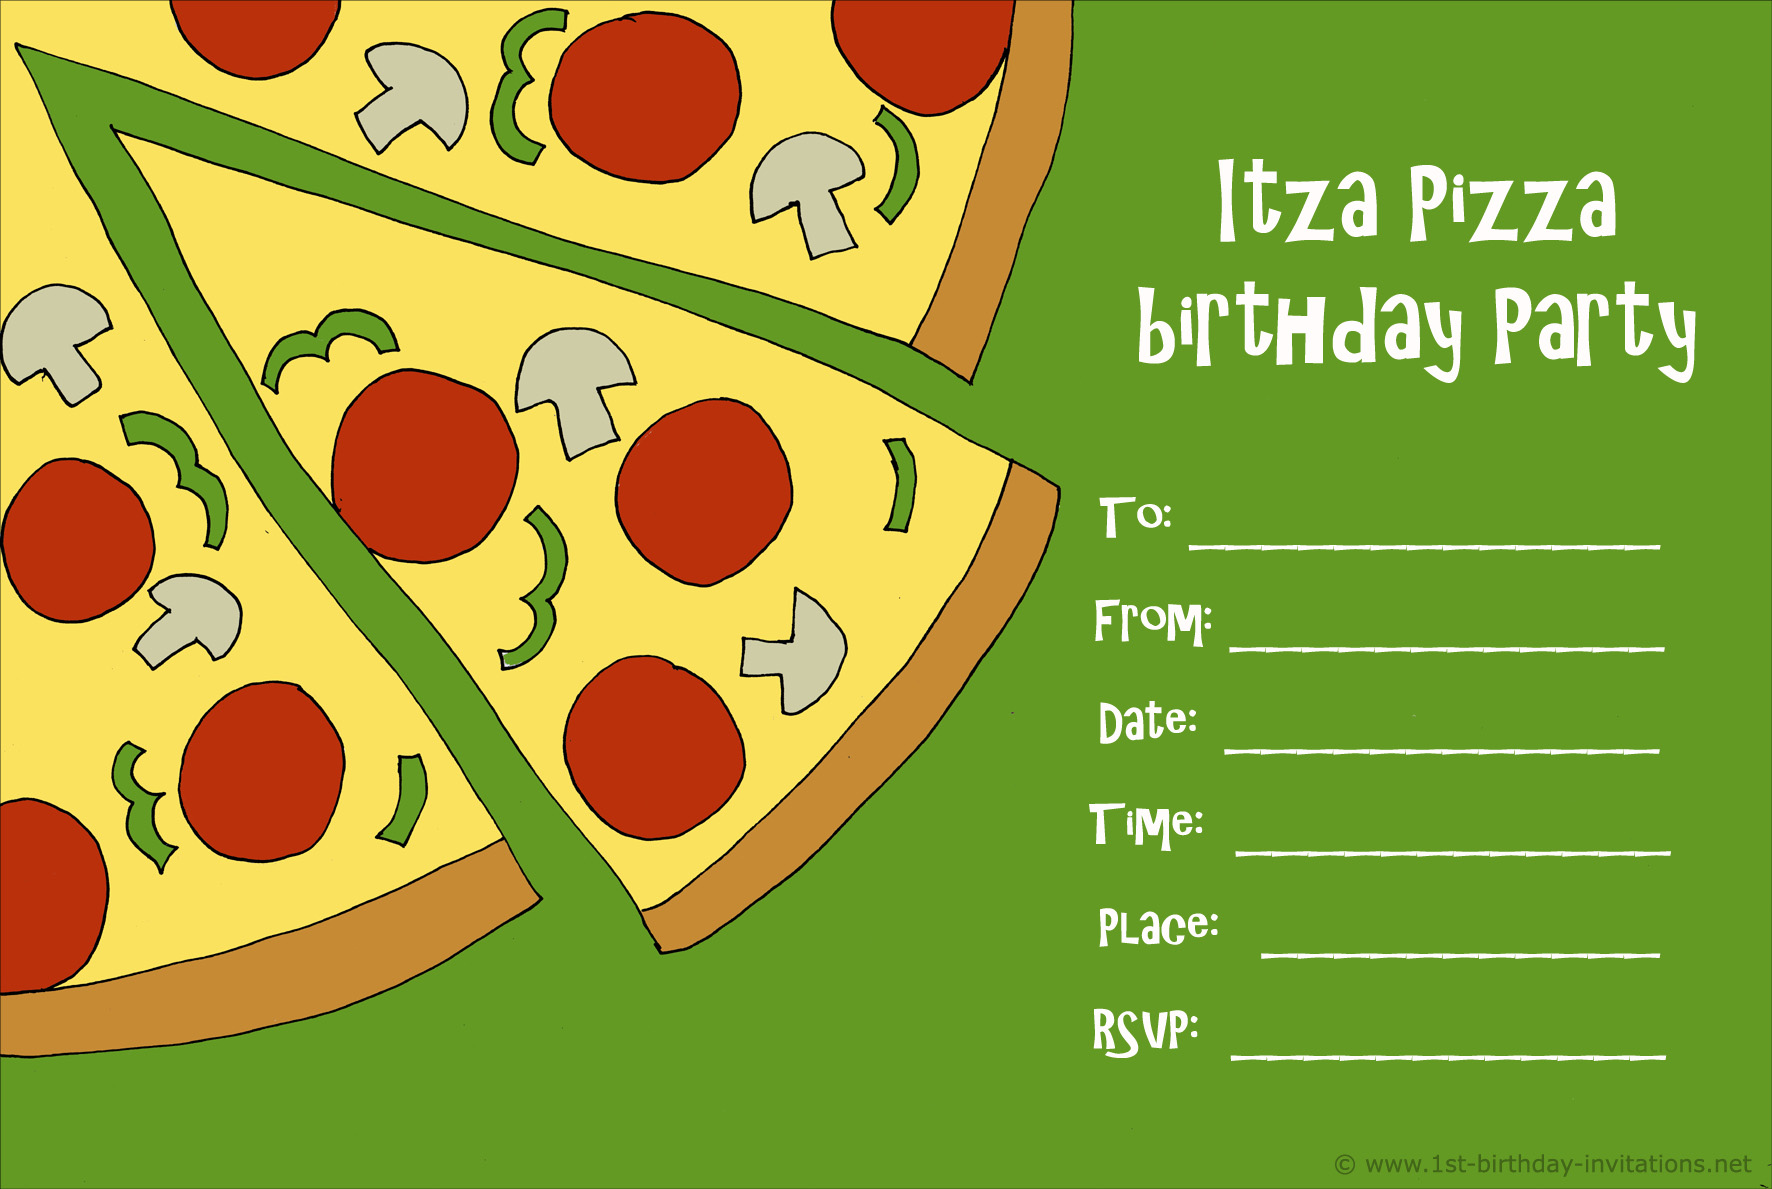 45th birthday invitation templates ; pizza-party-invitation-and-the-lovely-concept-of-the-Party-Invitation-Template-with-an-inspired-invitation-template-45